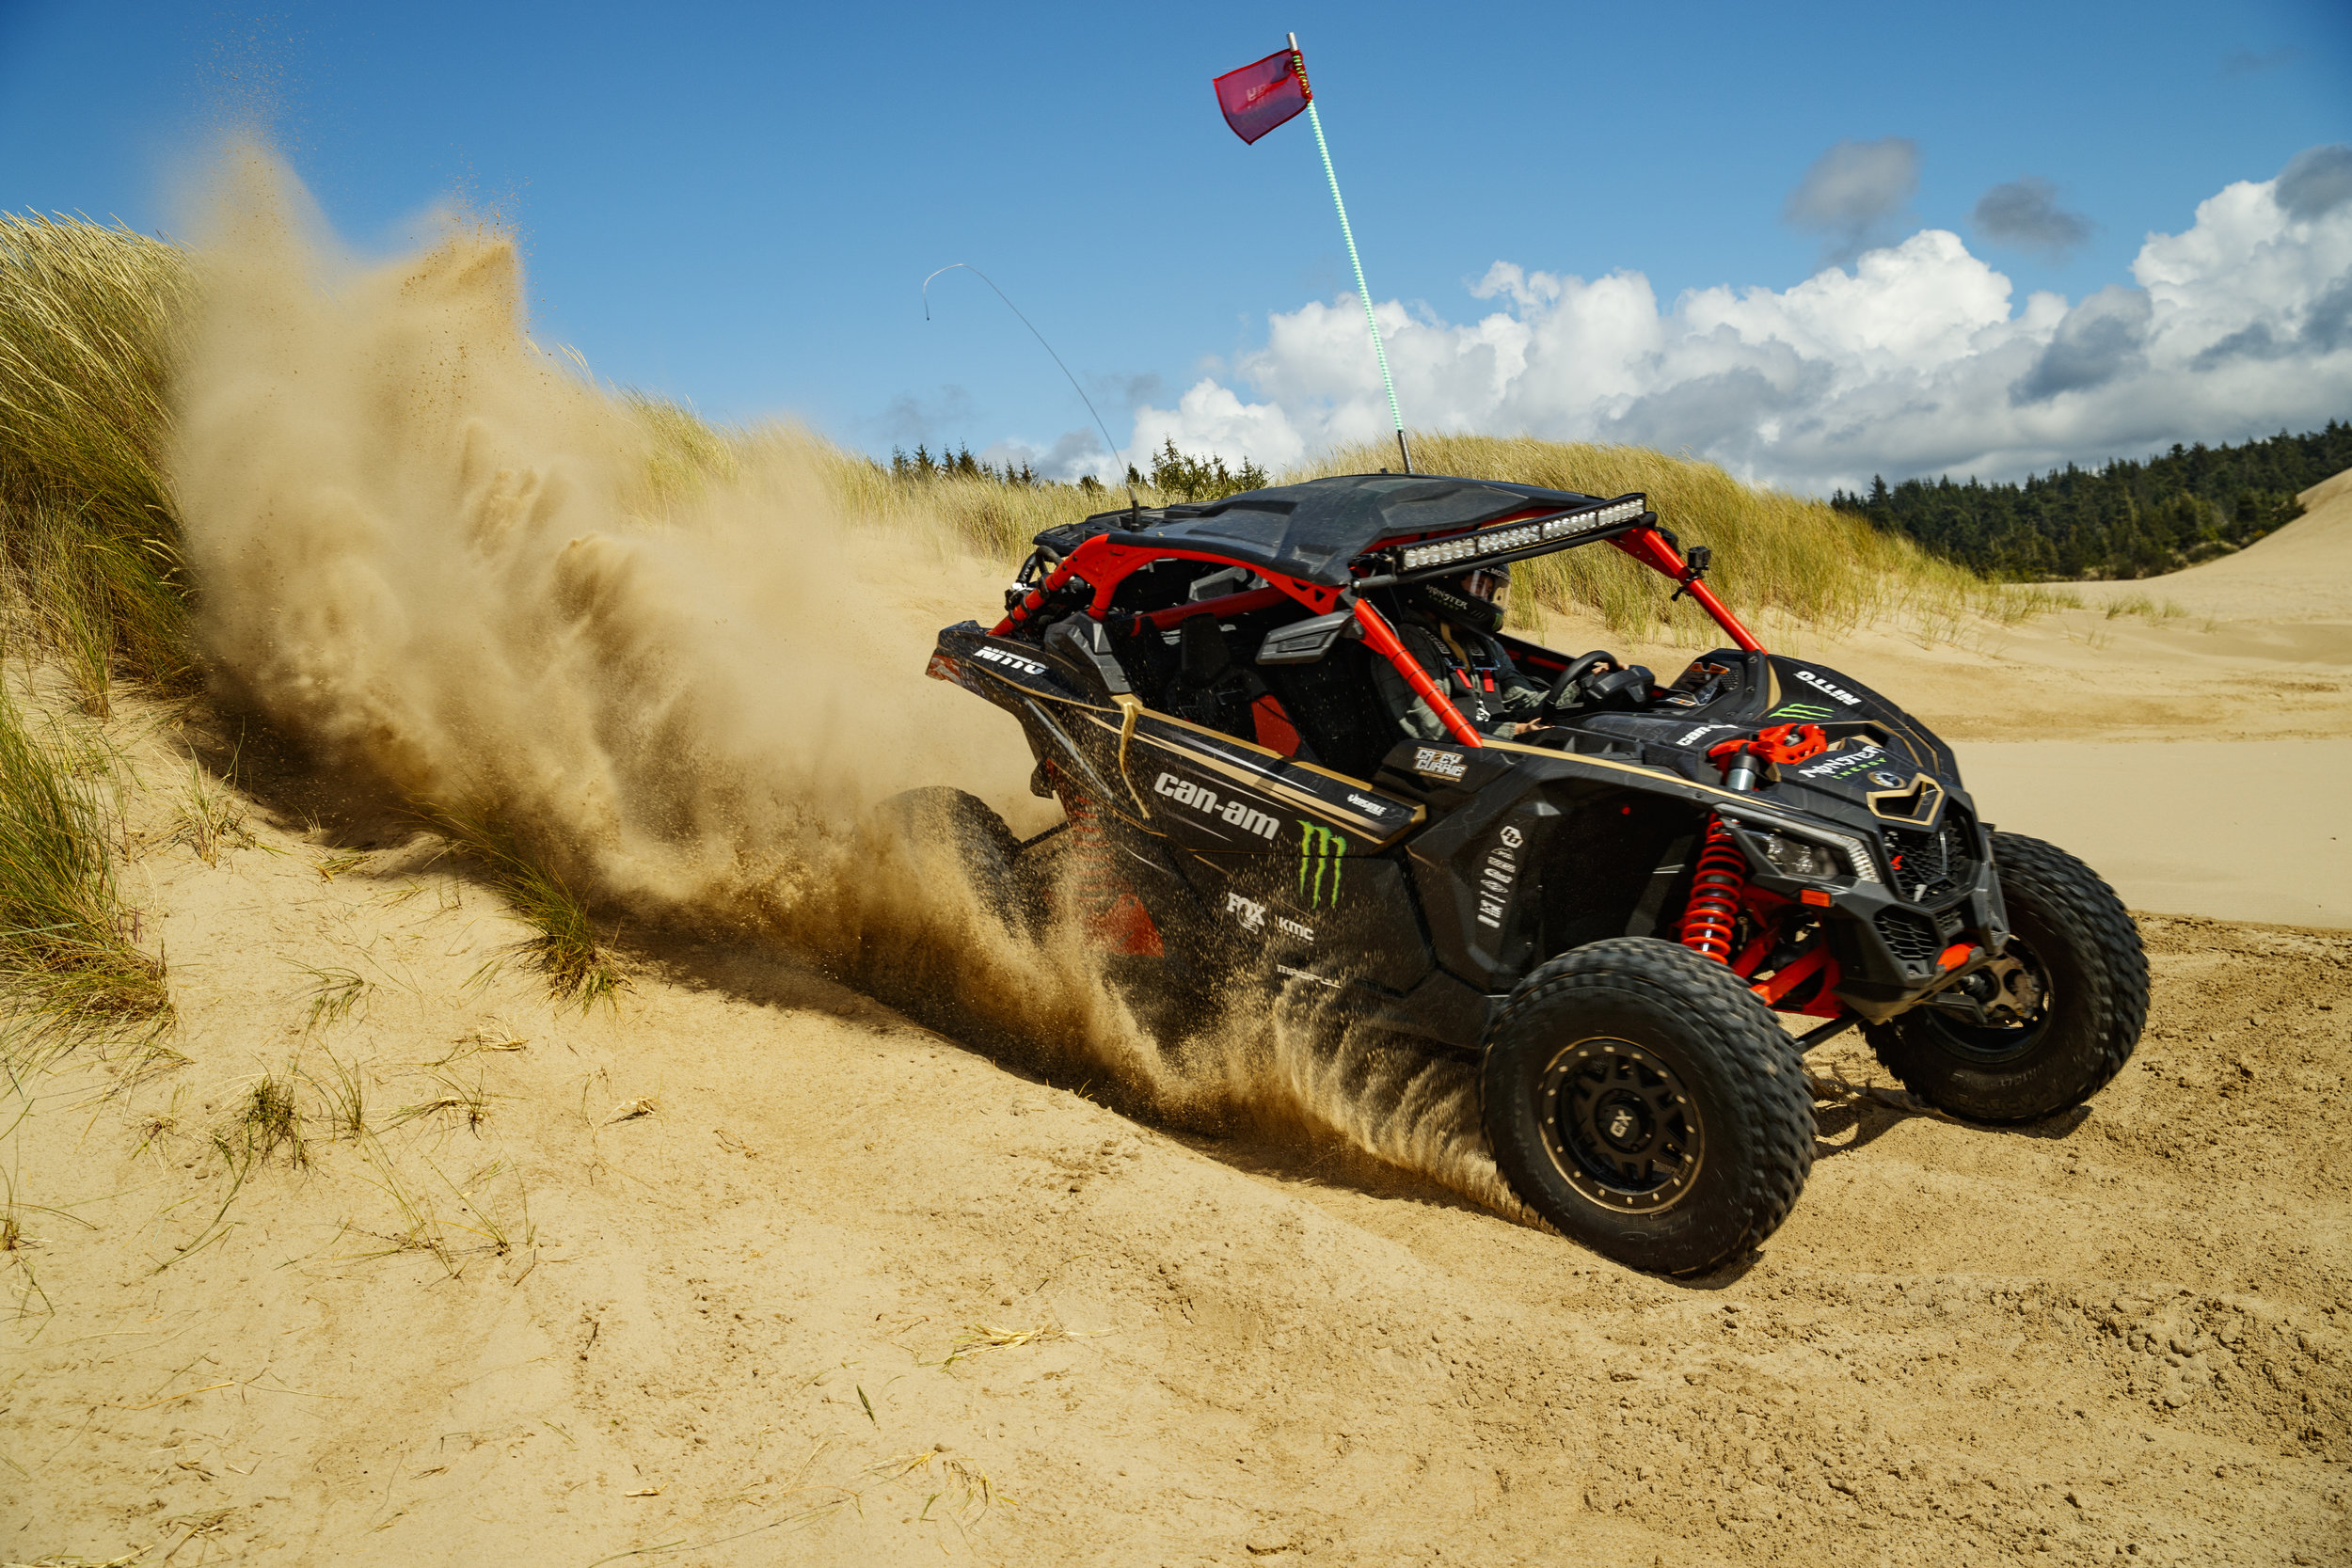 CaseyCurrie_UTVTakeover_CoosBay_Oregon_Can-Am_015.jpg